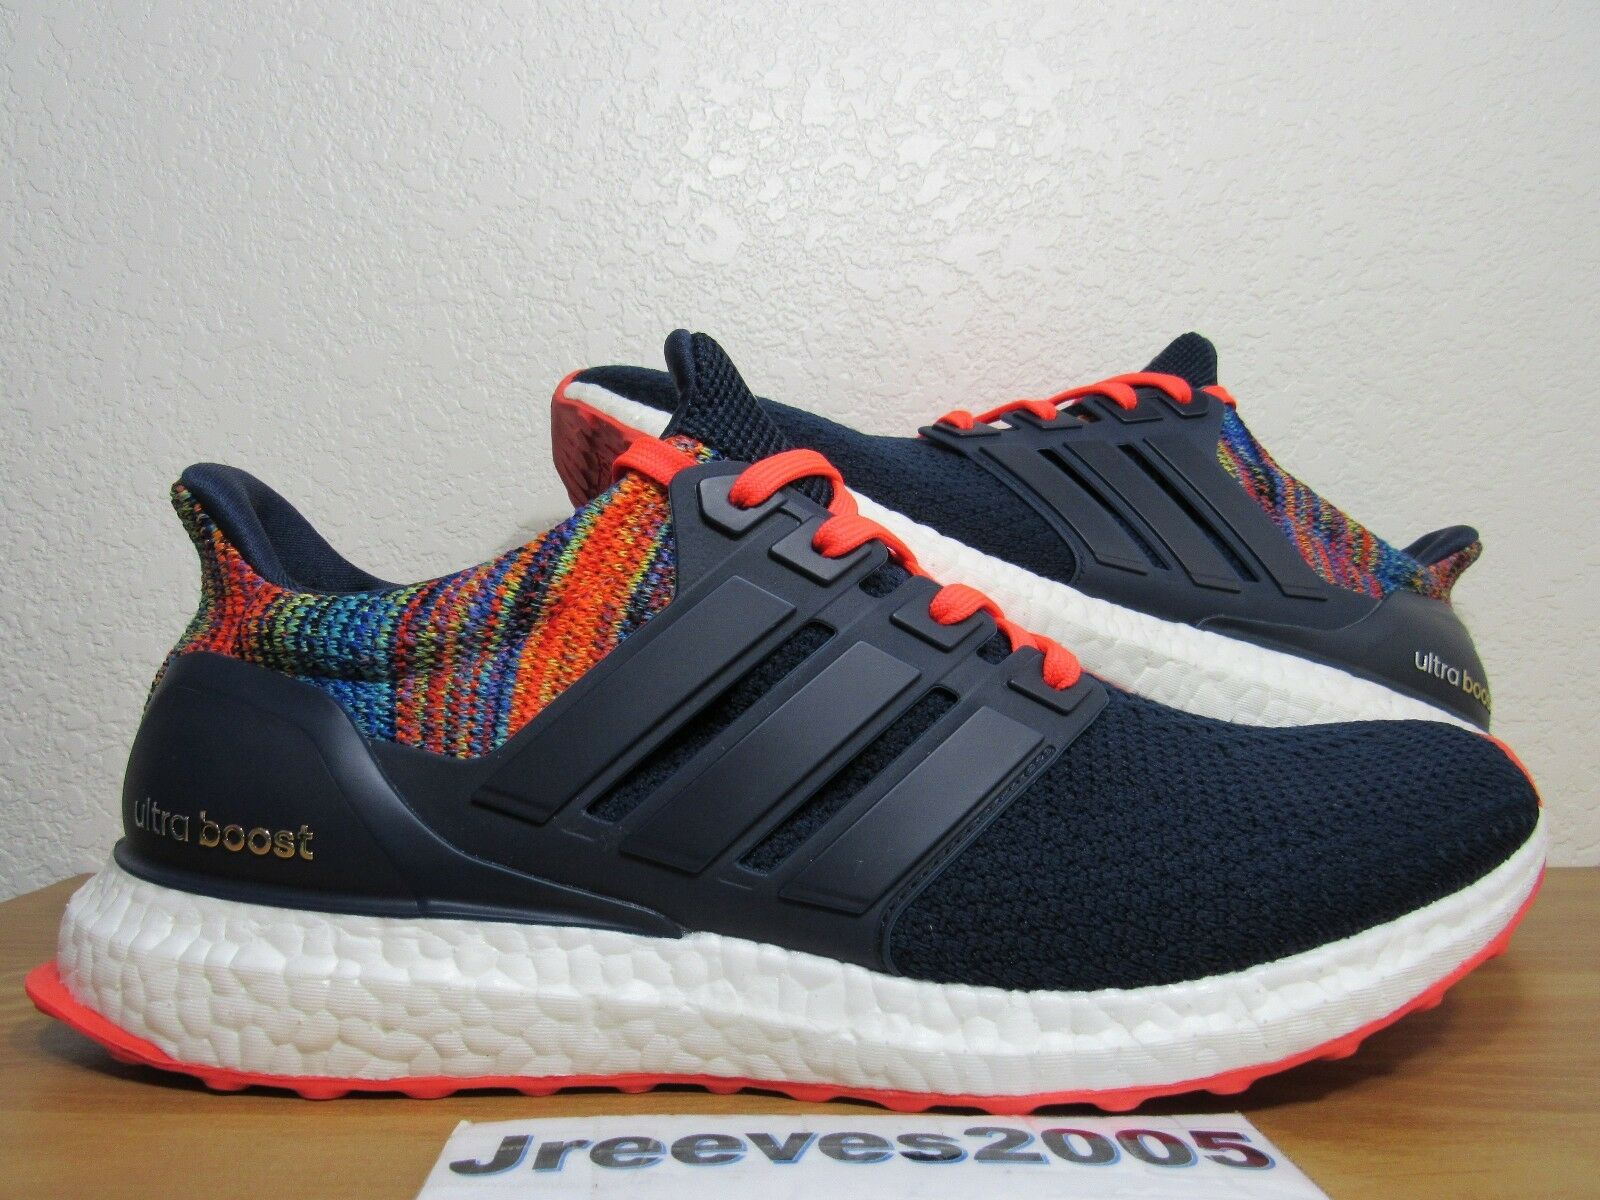 Mi Adidas Ultra Boost MULTICOLOR Sz 10.5 100% Auth. 1st Release Limited